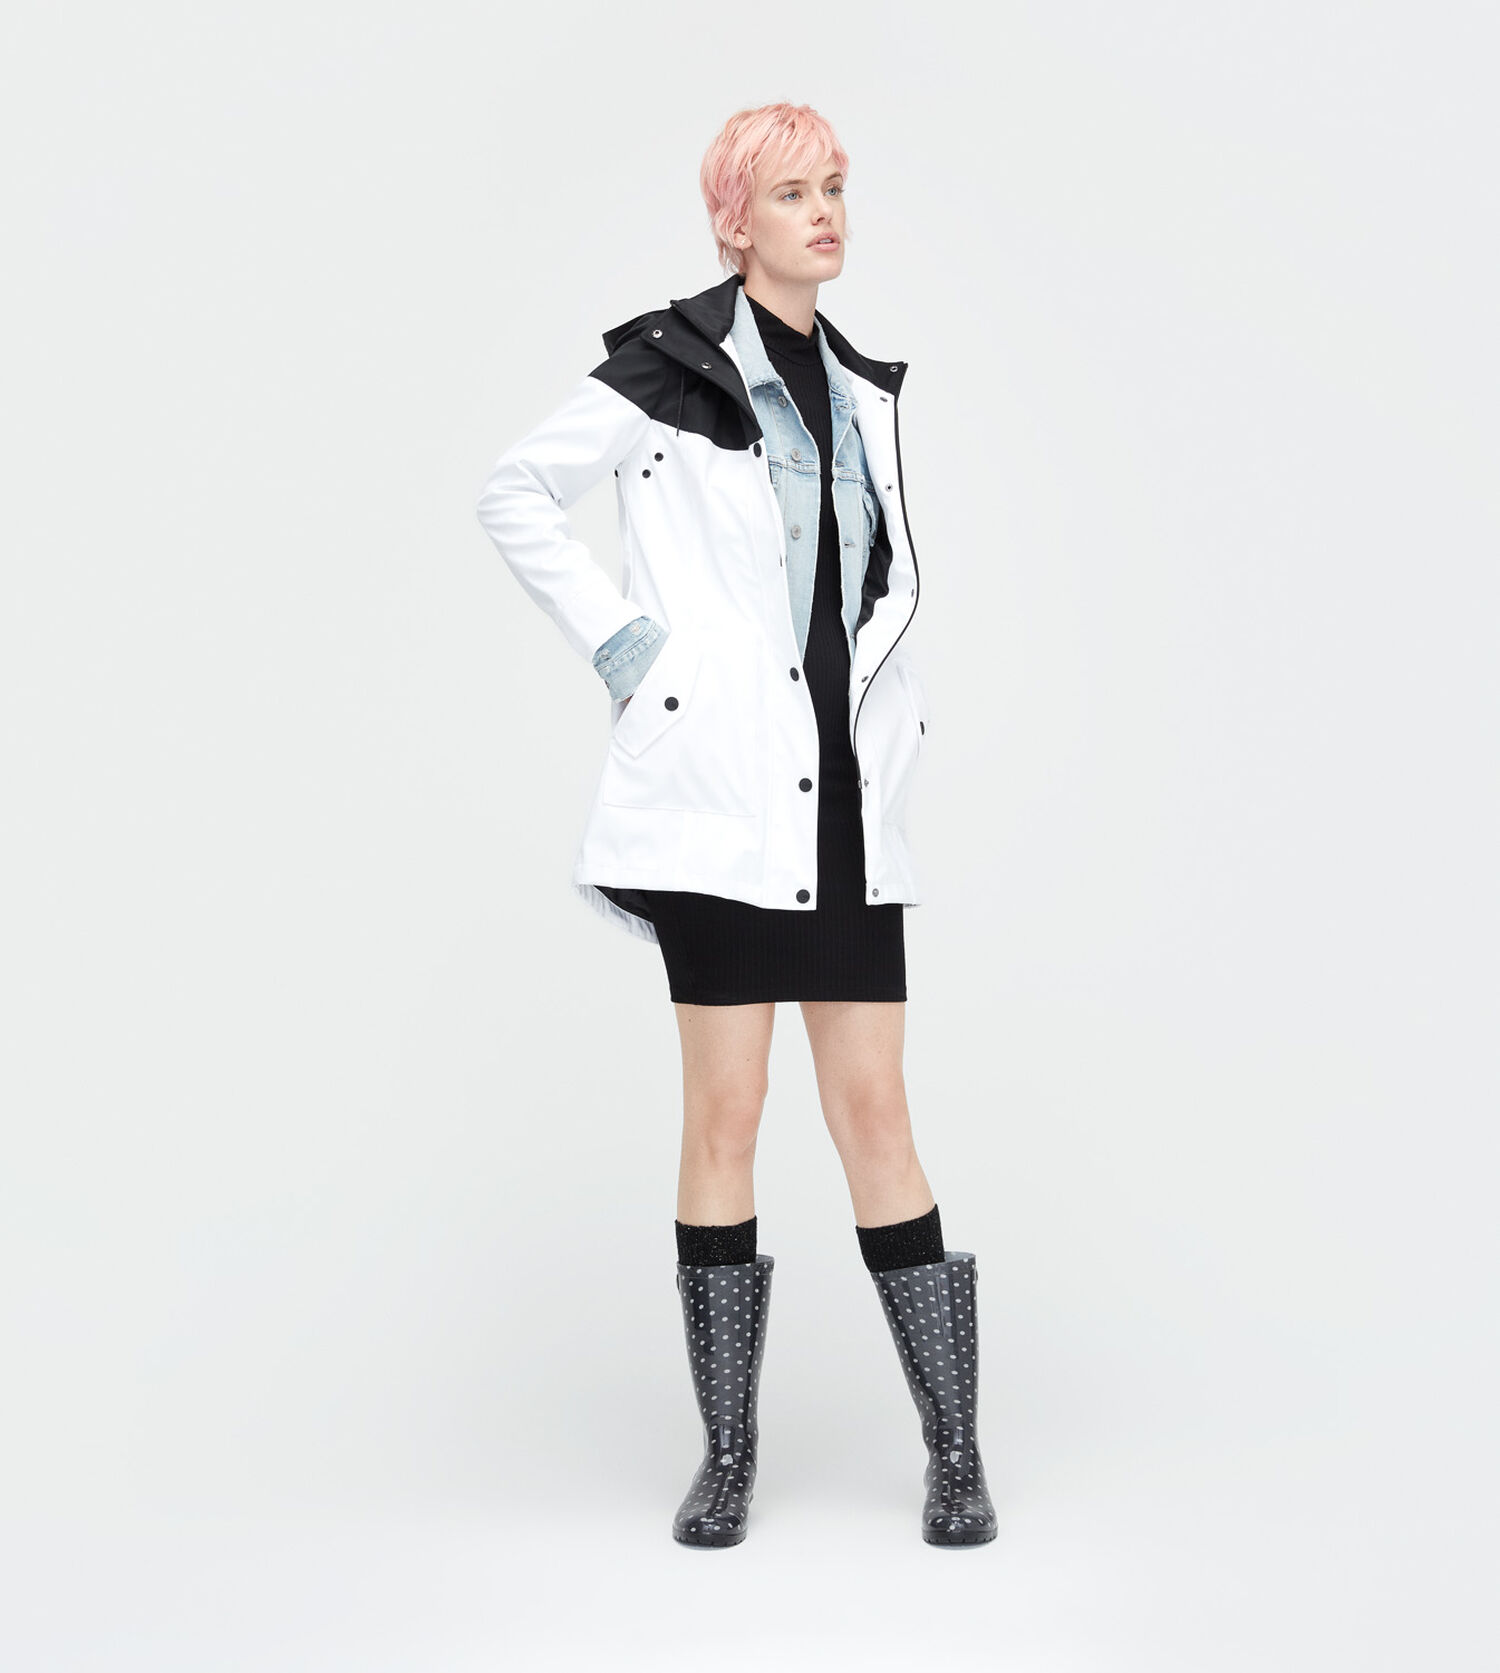 edb7578e7b5b Zoom Trench Rain Jacket - Image 1 of 3